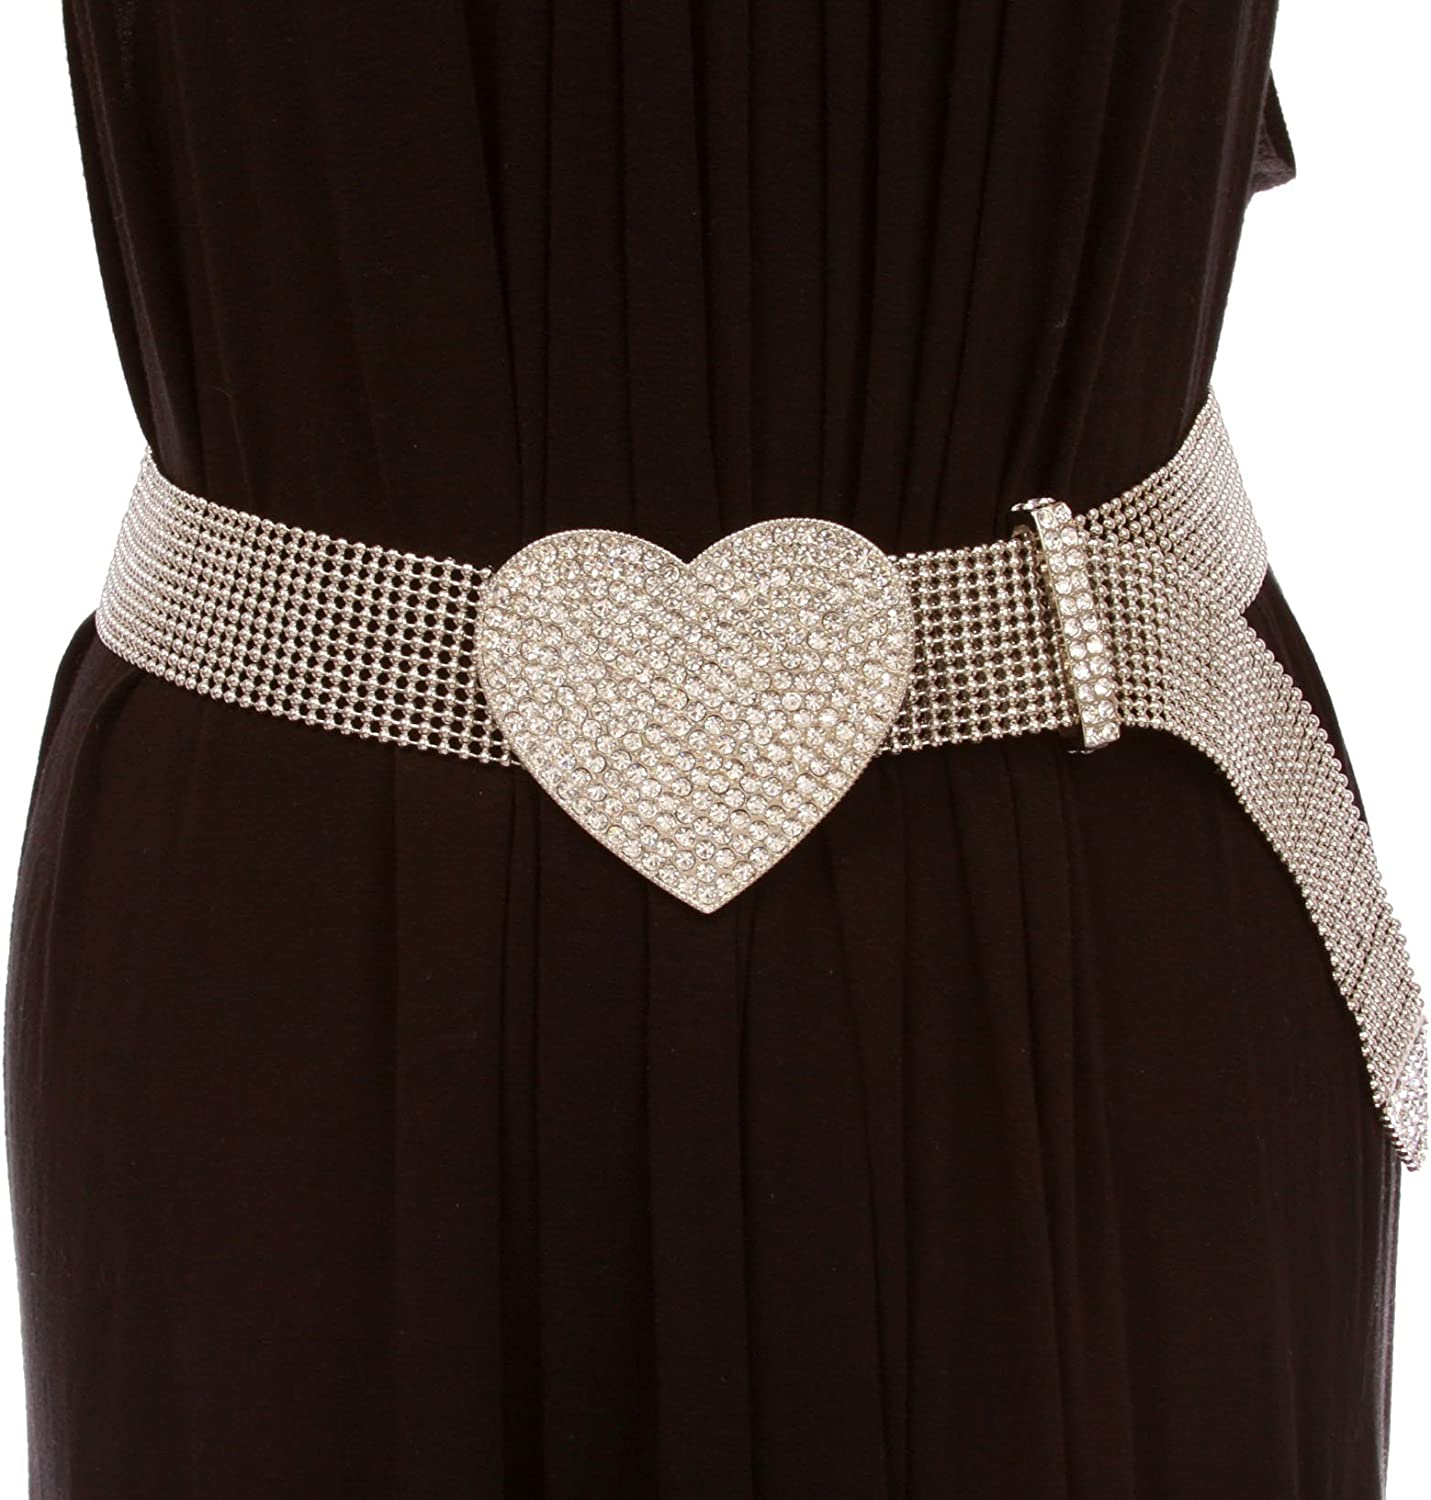 1 1 2  Rhinestone Encrusted Heart Mesh Metal Ball Chain Belt, silver w clear stone   one size up to 36